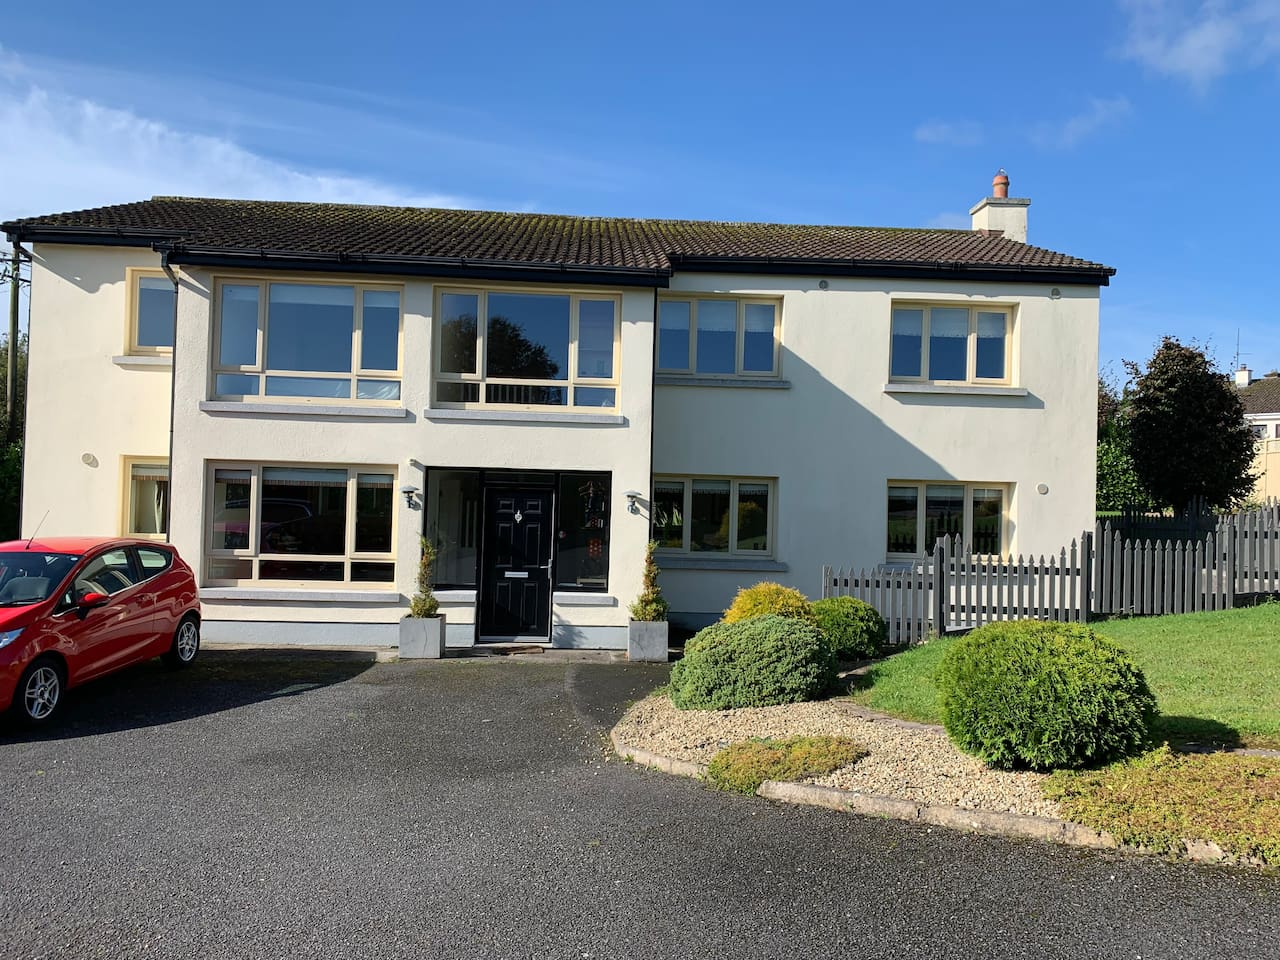 Sancta Maria just 5 minutes stroll from Moate town,set in a quiet and private location.